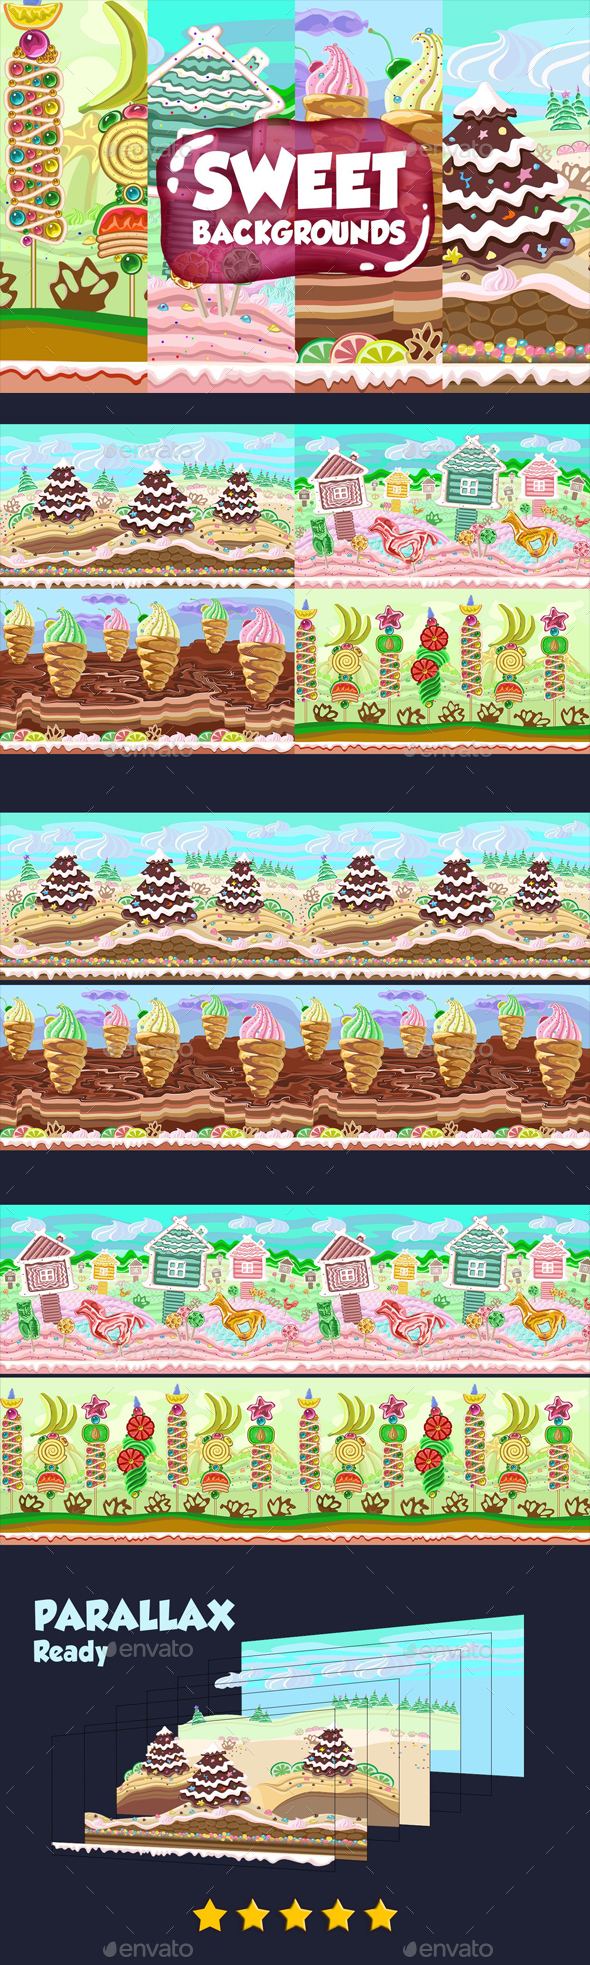 Parallax Sweet Backgrounds - Backgrounds Game Assets